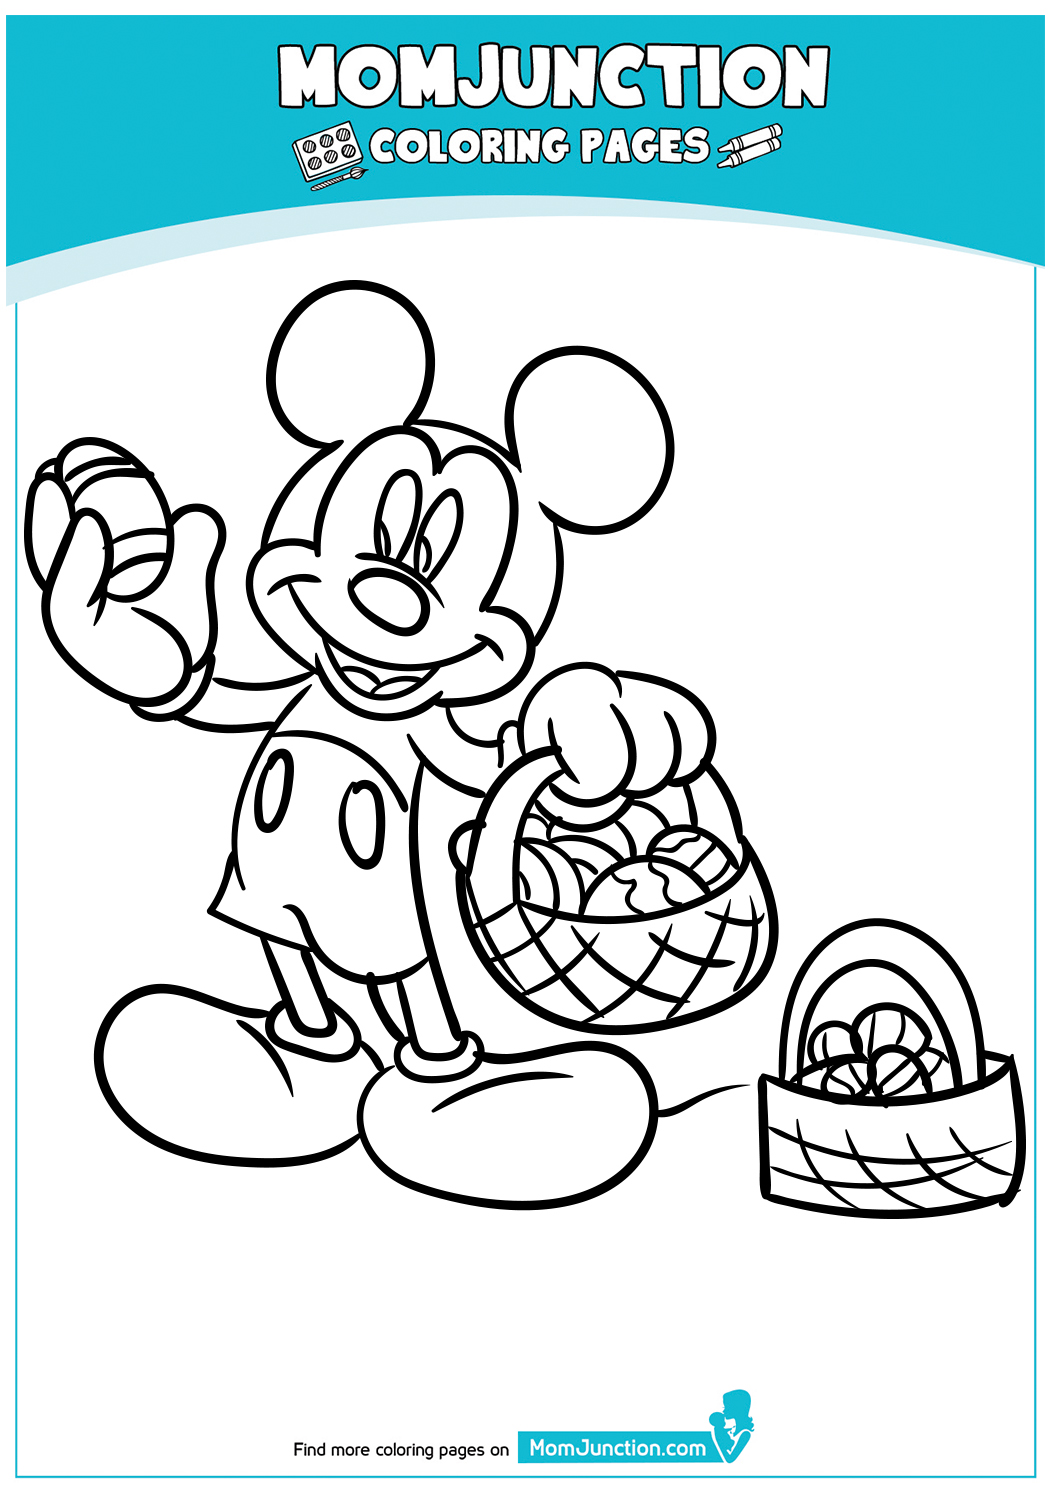 Mickey-Mouse-with-Waster-Egg